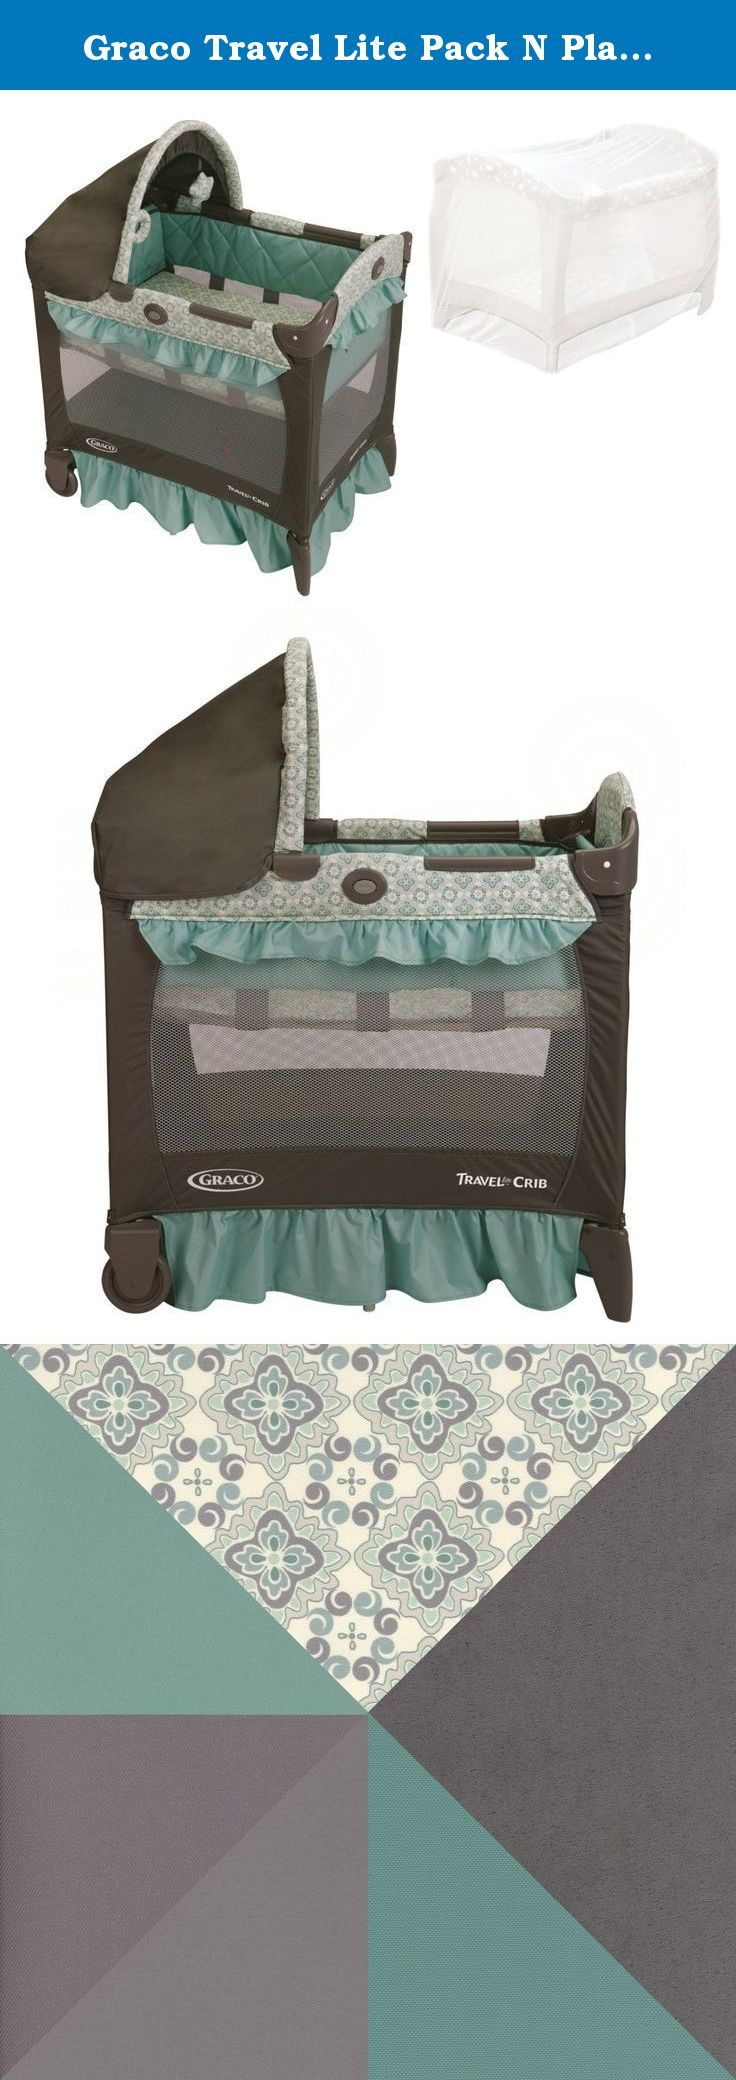 Graco Travel Lite Pack N Play Playard with Playpen Netting, Winslet. Graco Travel Lite Pack N Play Playard is THE ultra-comfy travel crib that will keep your little one well rested at home or away. It features a removable, full bassinet with quilted side panels to pamper your little sleeper. The canopy with soft toys soothes and shields baby from light. This travel lite playard is designed to be 20% smaller than traditional playards, so it will fit easily in your bedroom. And it features…